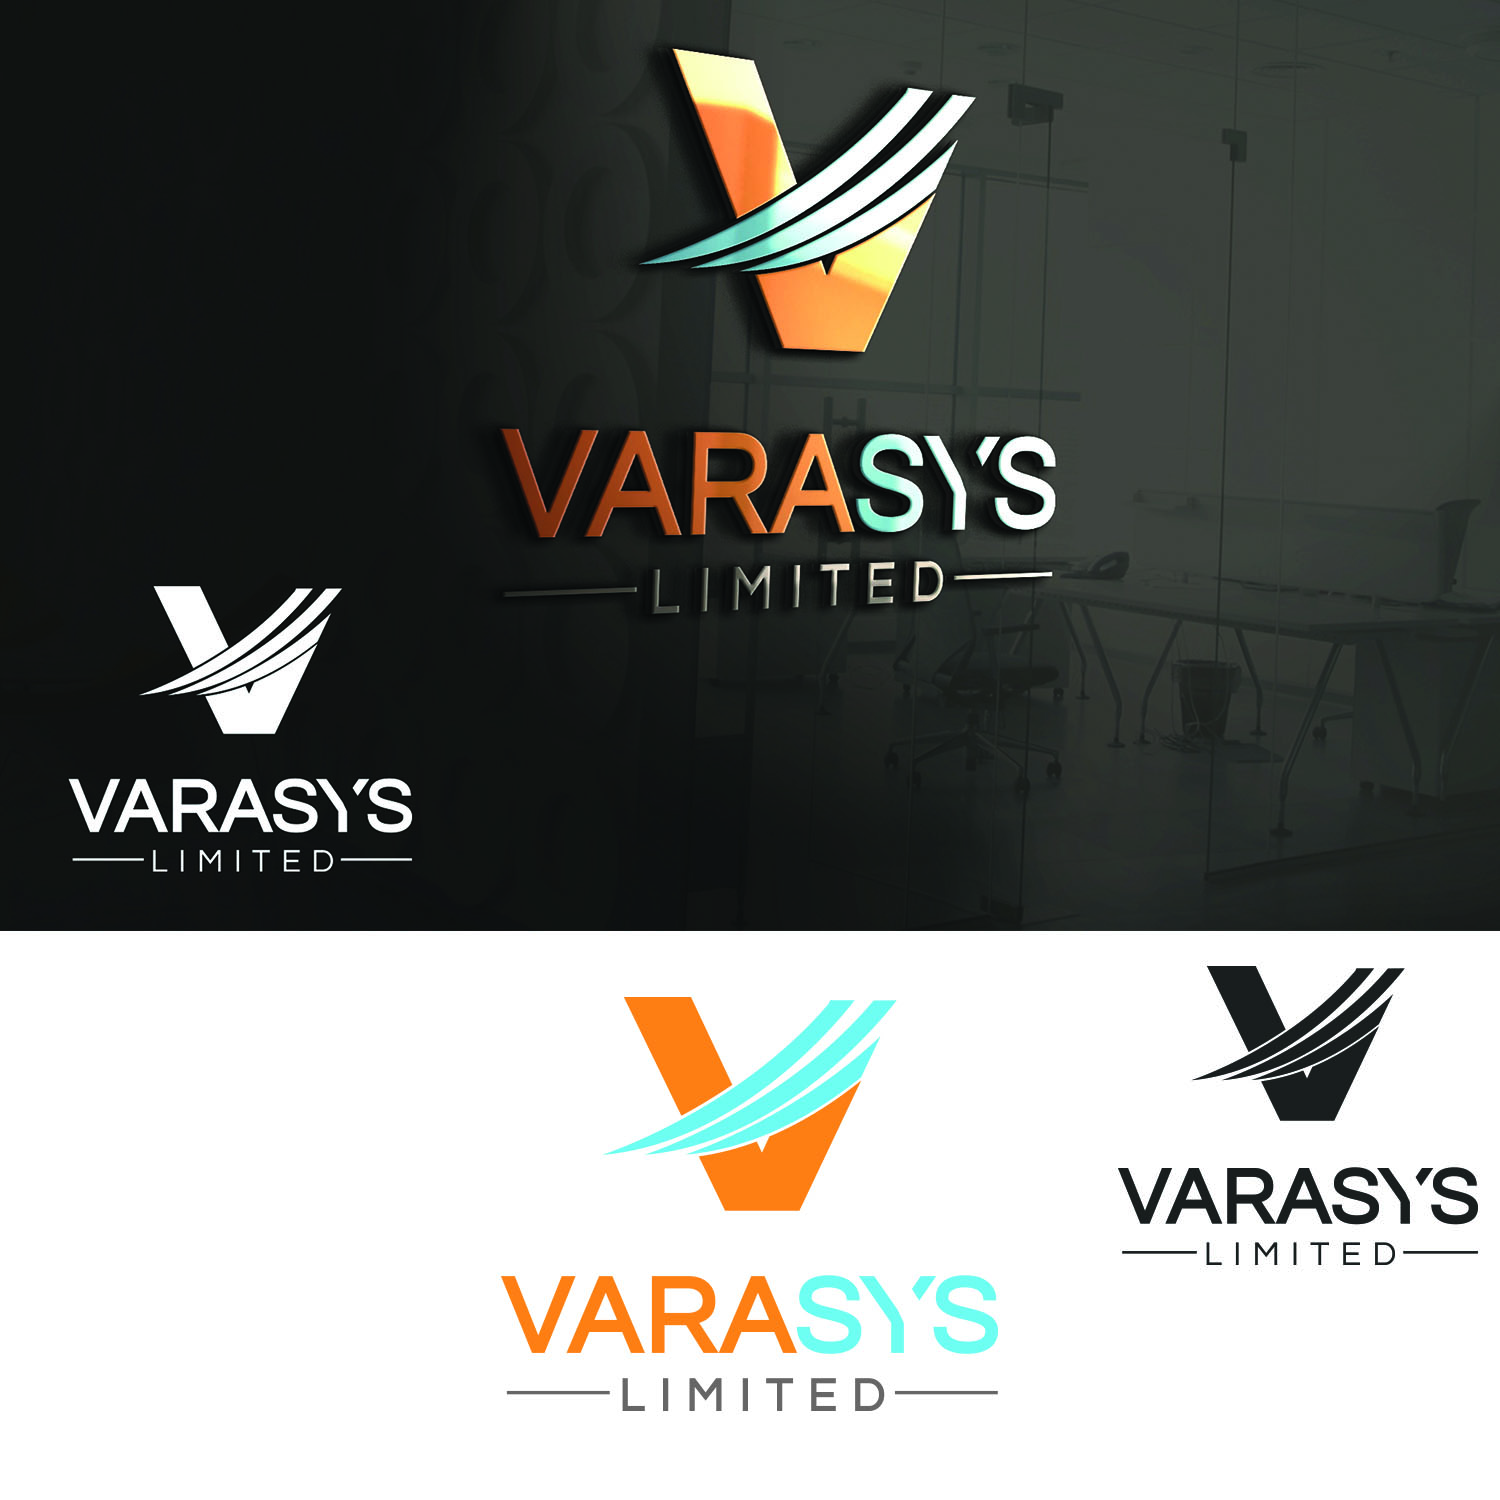 Logo Design by Umair ahmed Iqbal - Entry No. 63 in the Logo Design Contest Artistic Logo Design for VARASYS Limited.